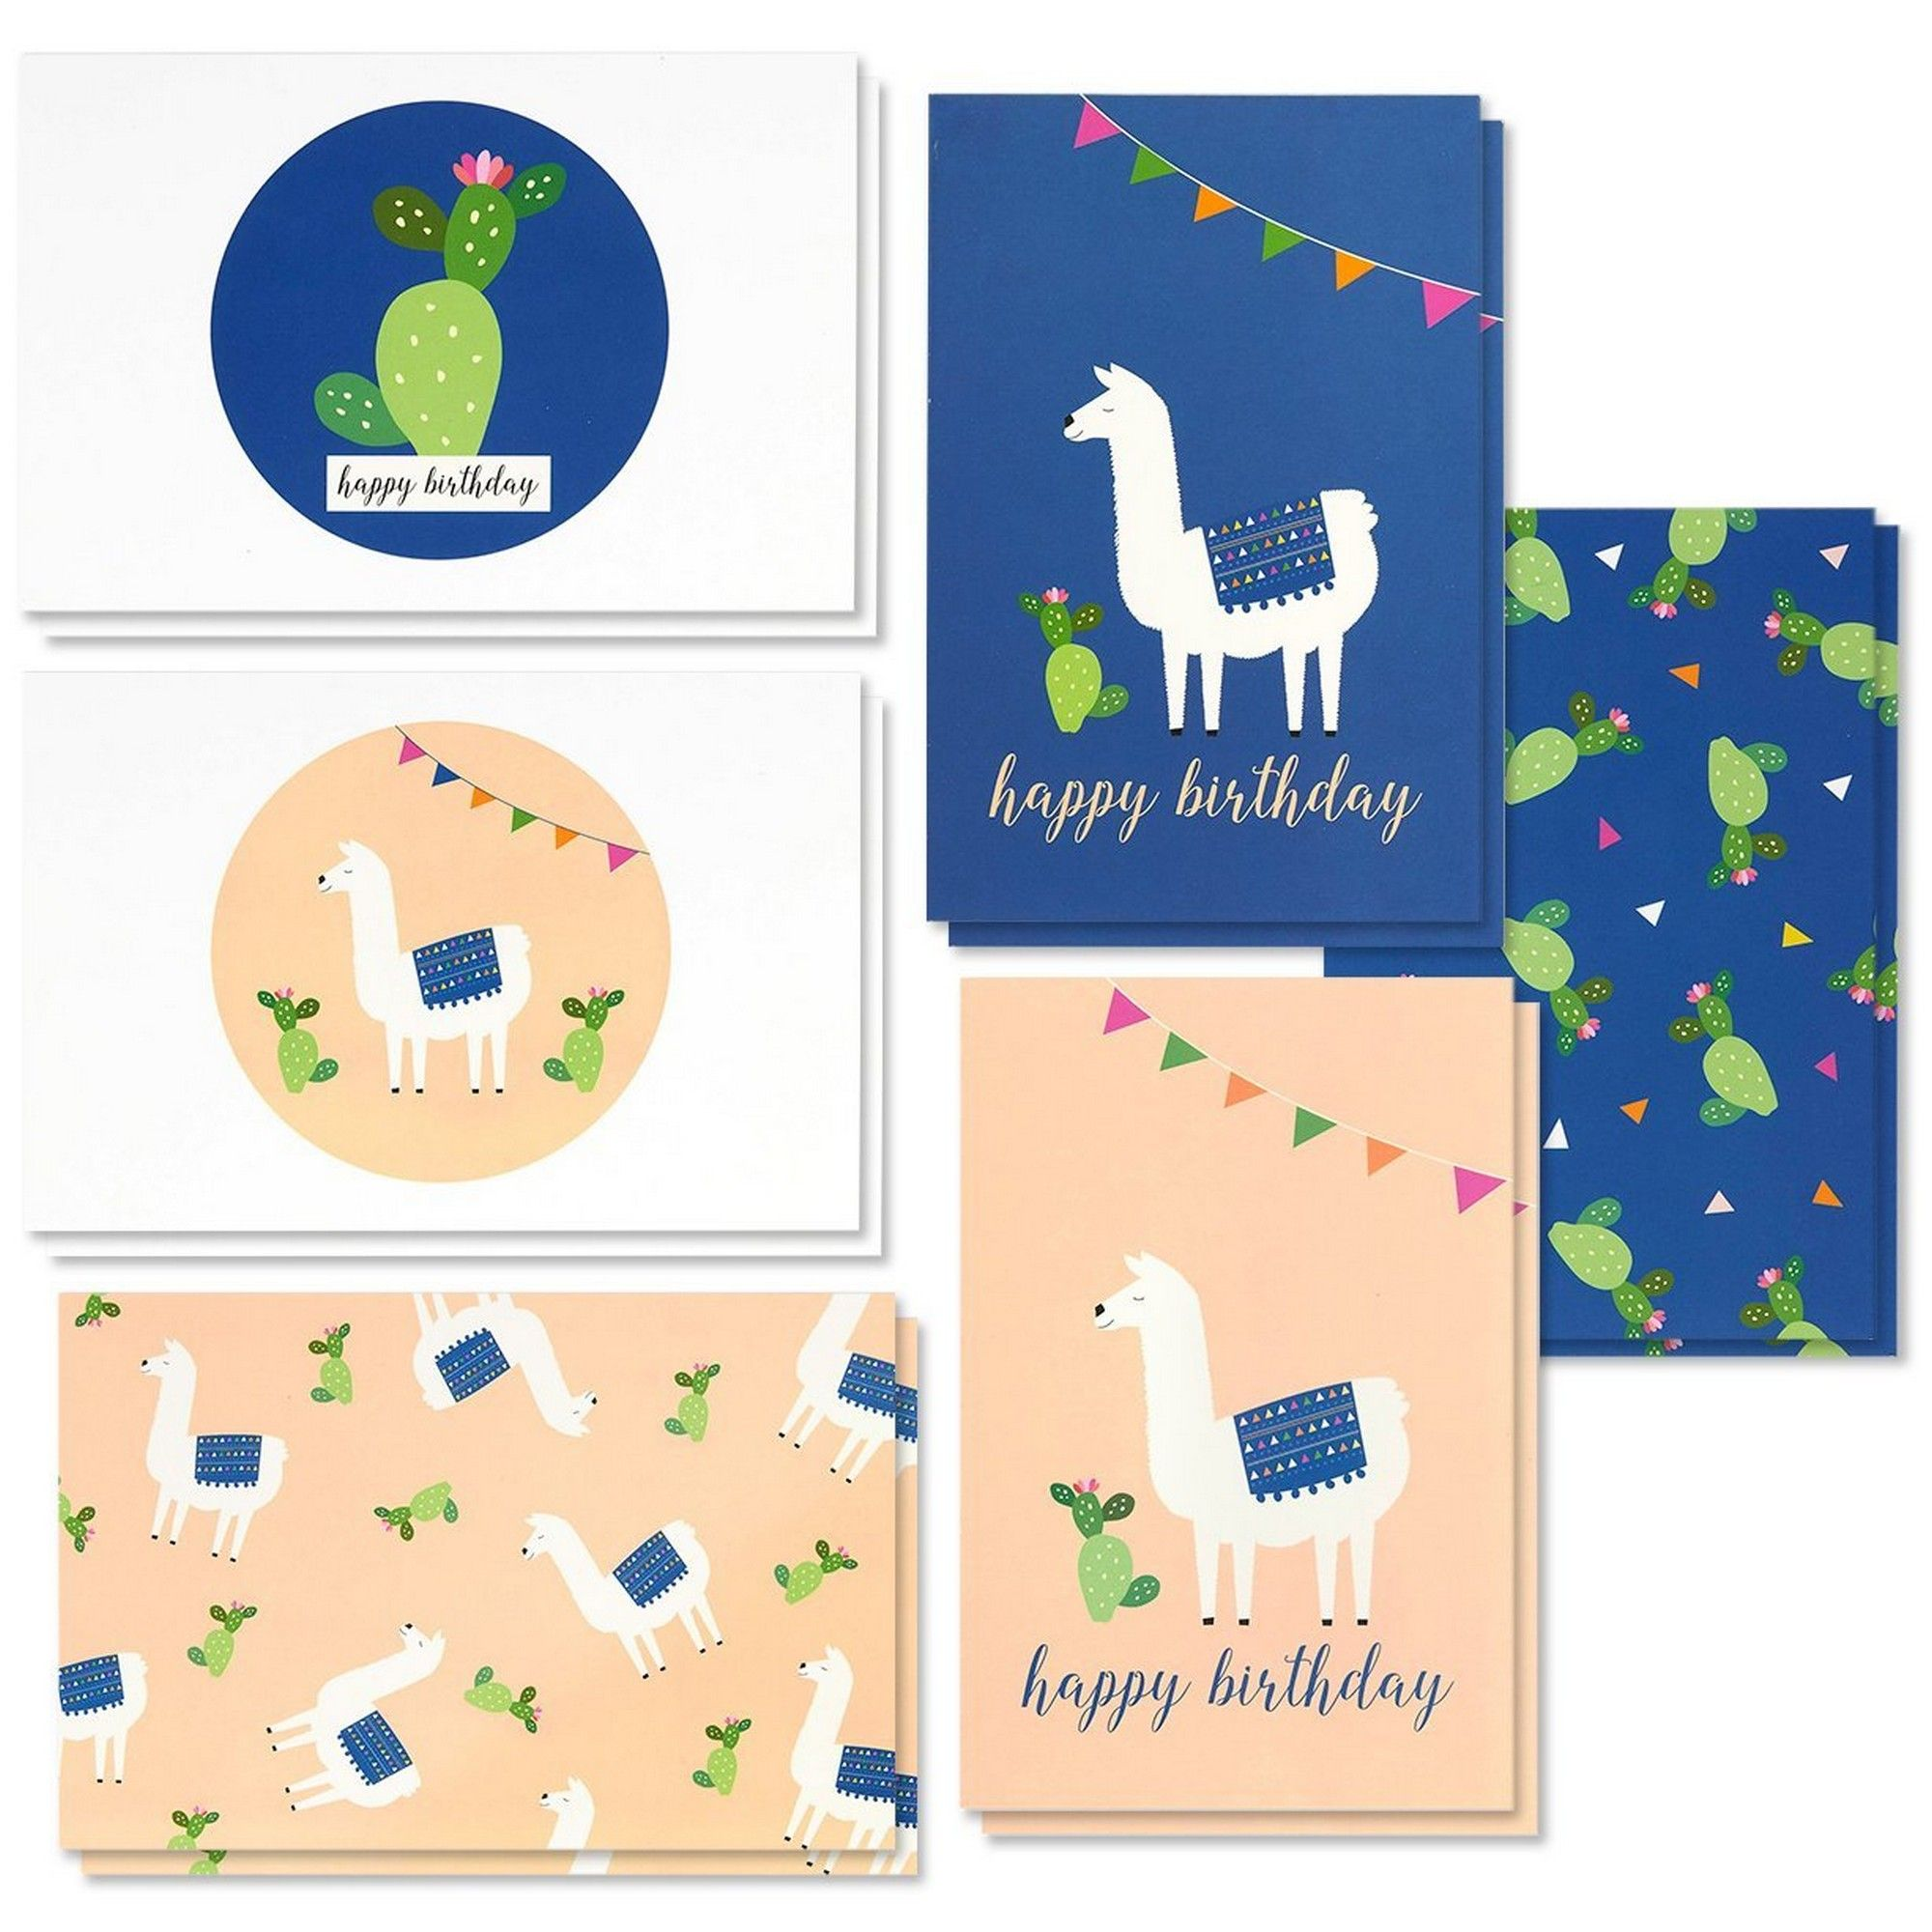 48-Count Happy Birthday Cards Assortment With Envelopes